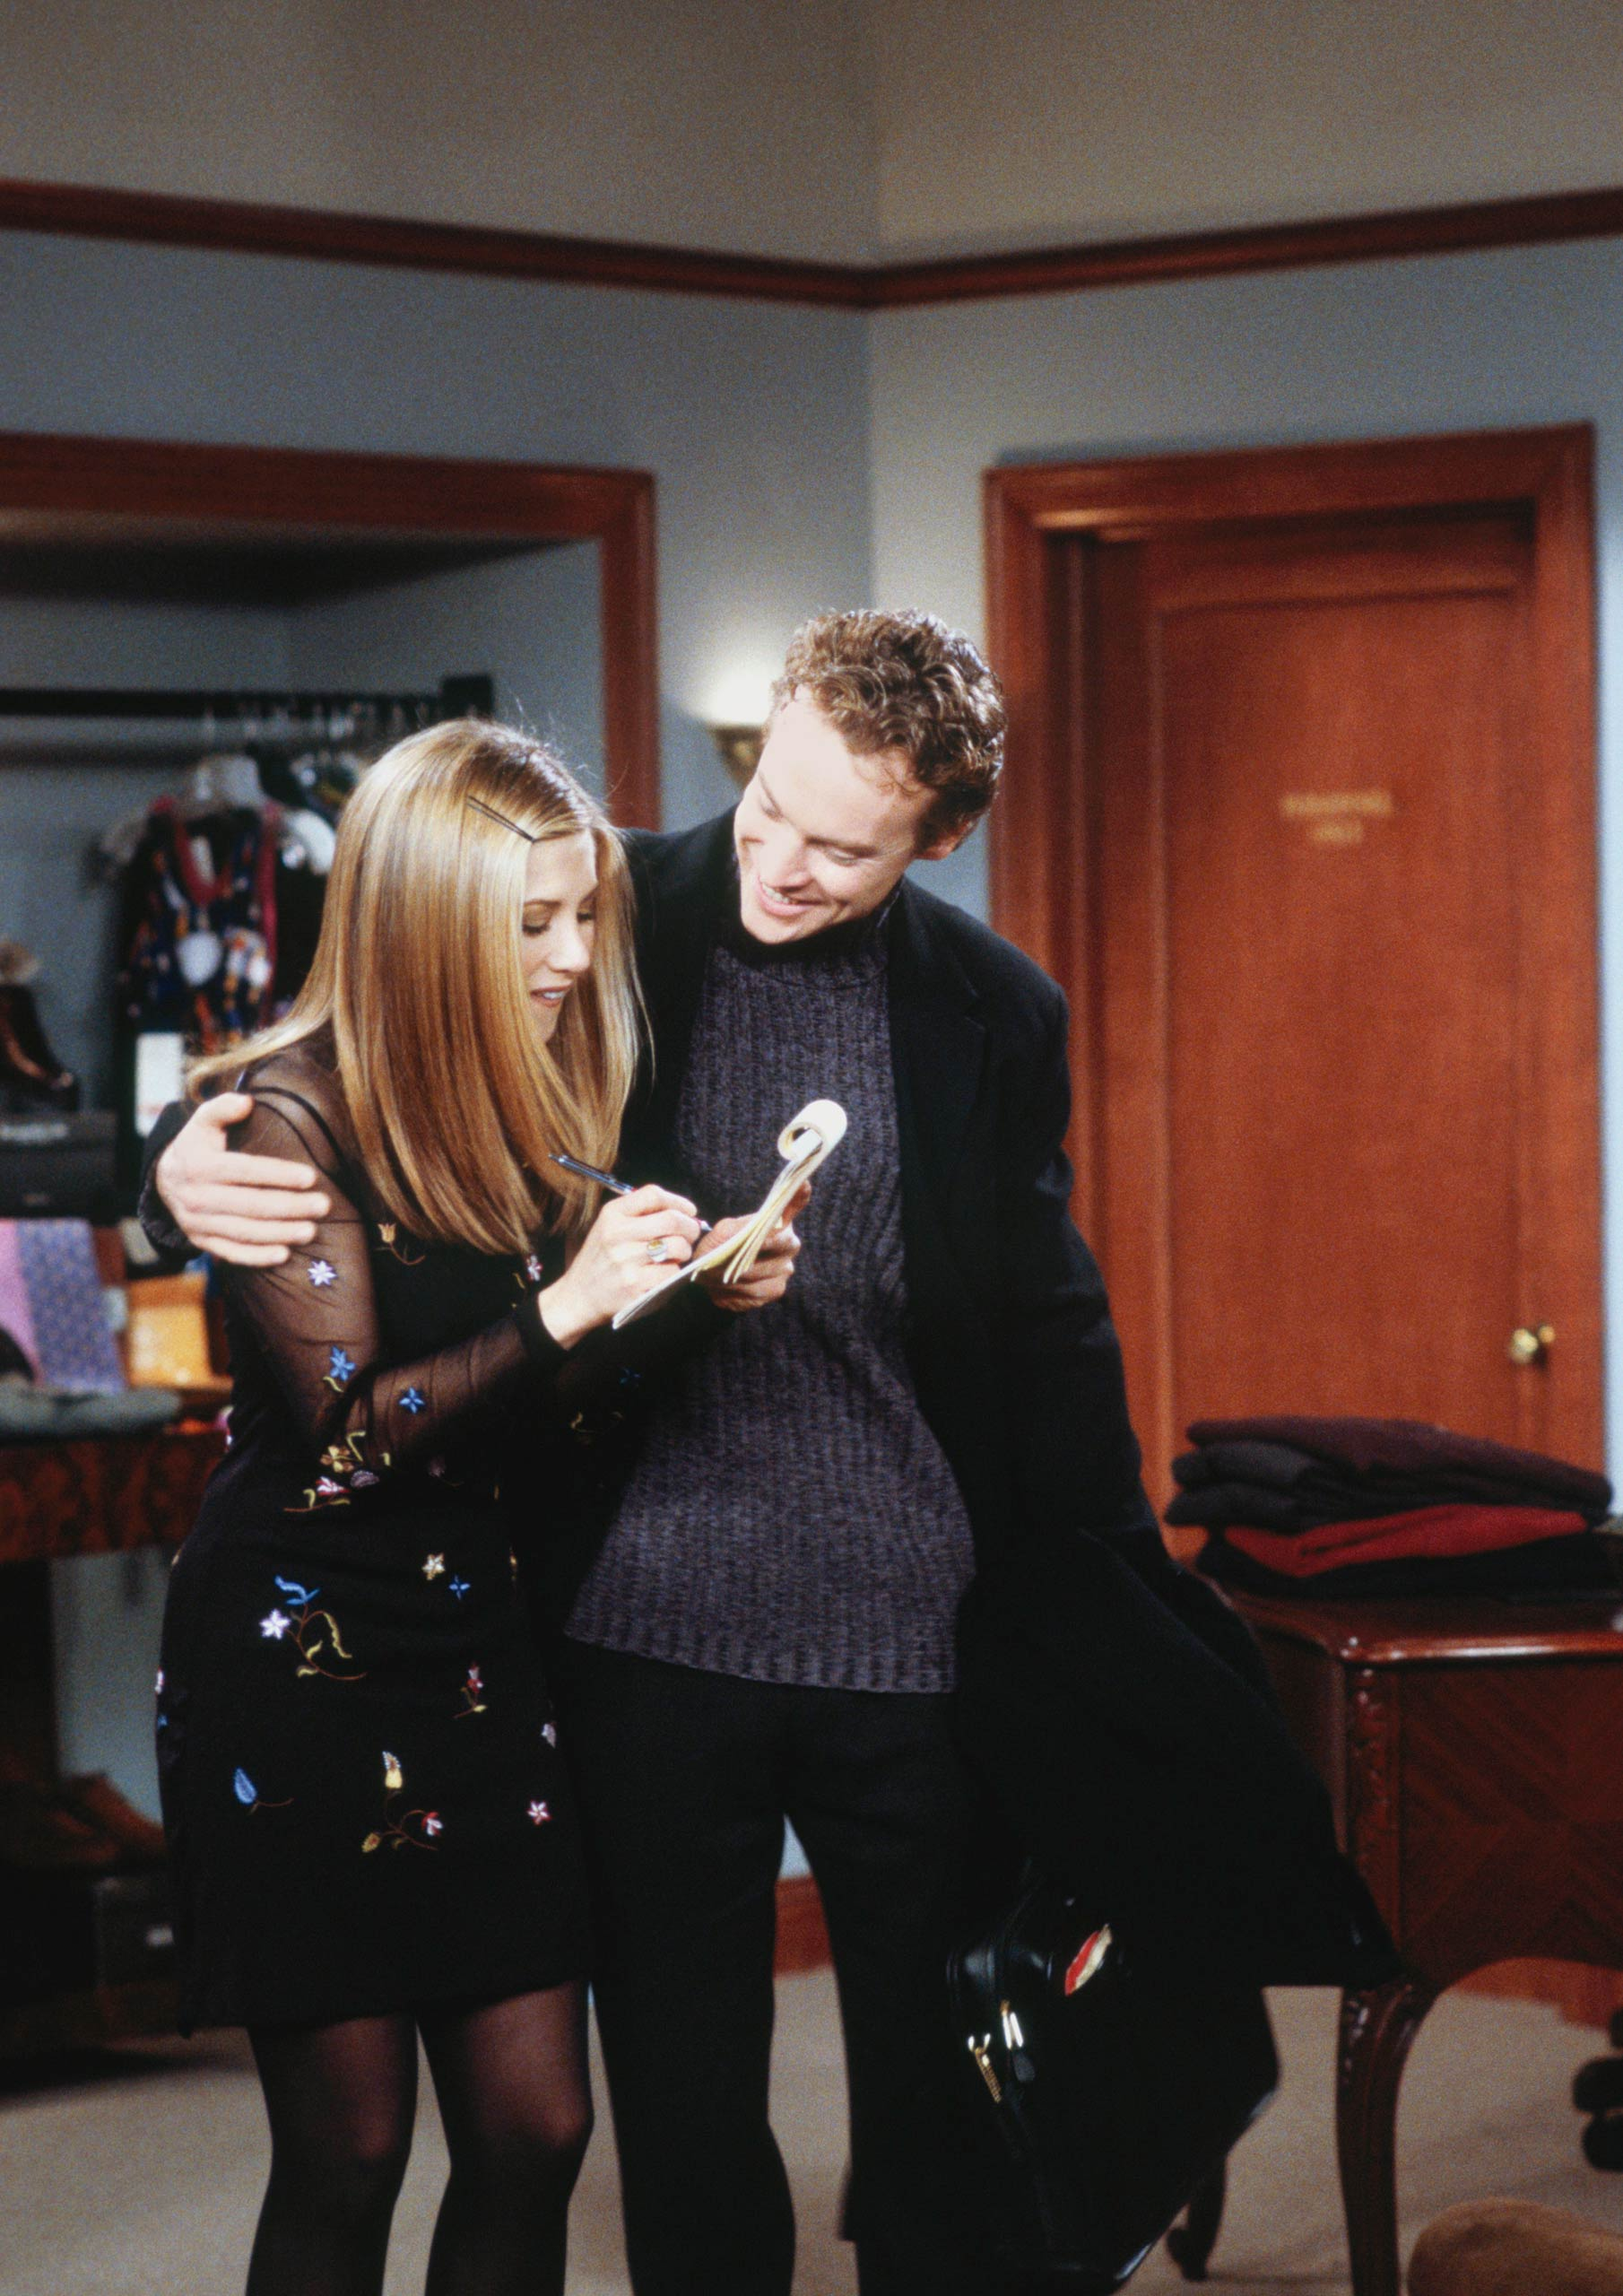 <strong>Tate Donovan</strong> – Real–life couple Jennifer Anniston and Tate Donovan played a couple on the show, too